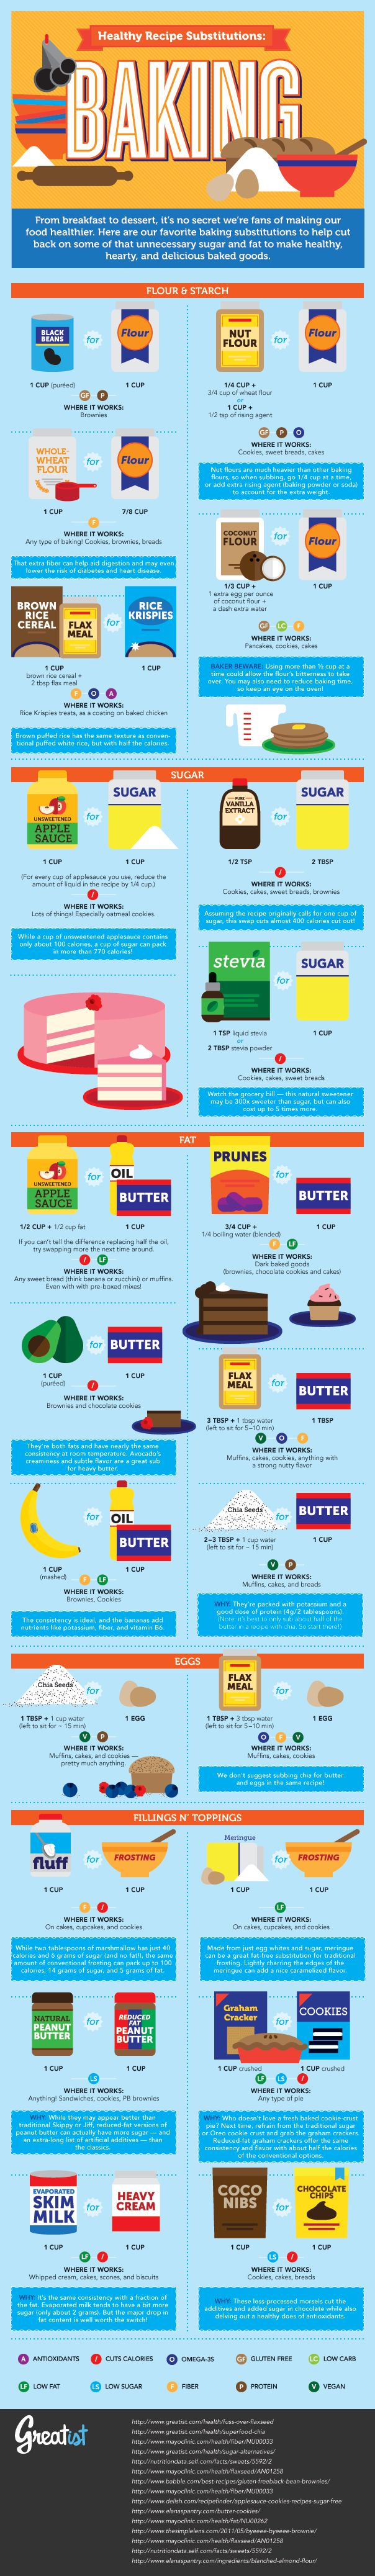 Healthy Baking Substitutions - thank you Ashley for the tips!